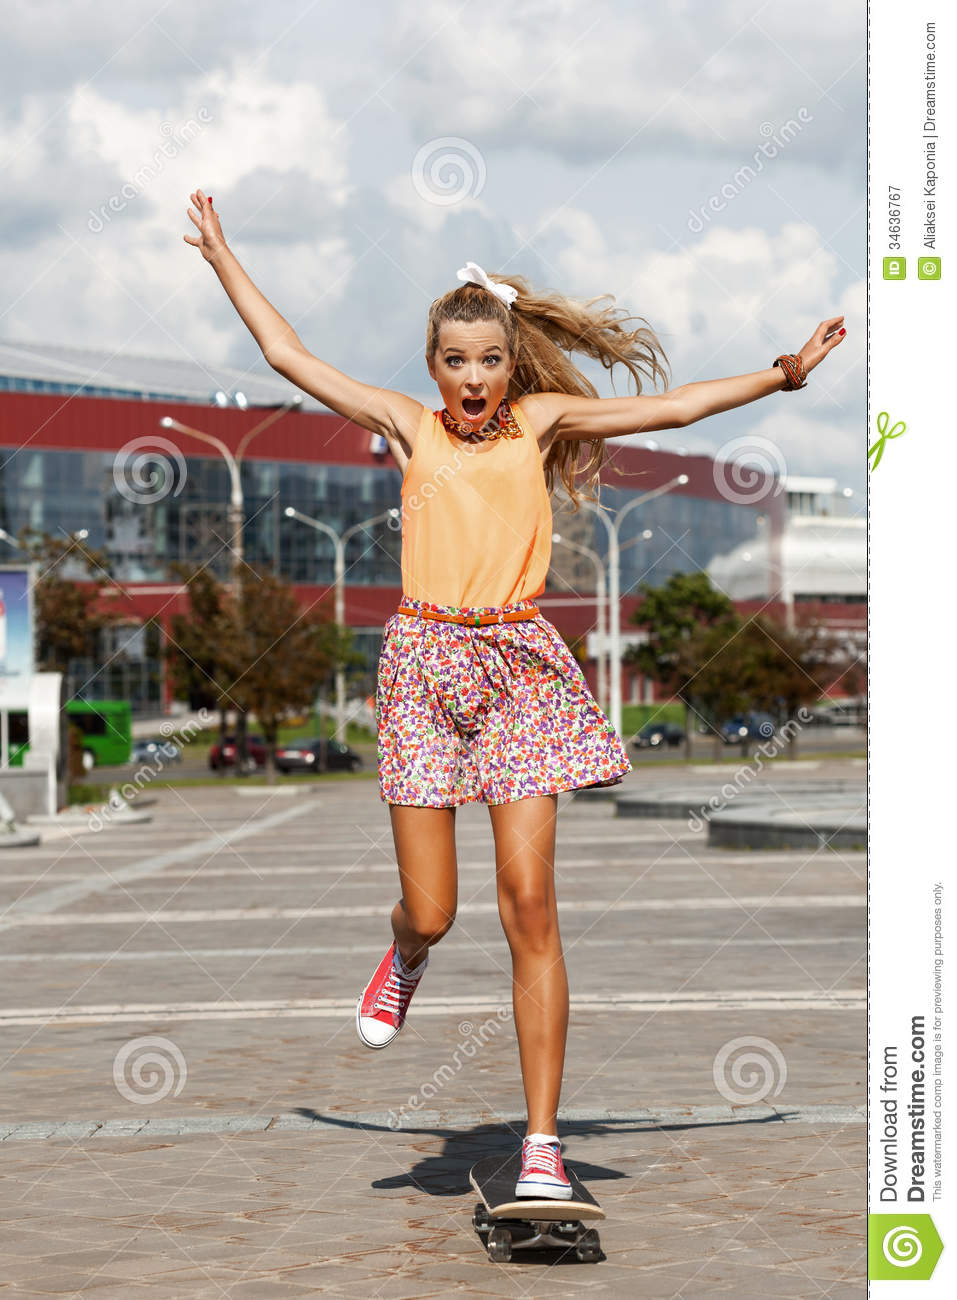 Modern Girl Wallpaper Free Download Woman With Skateboard Royalty Free Stock Photography